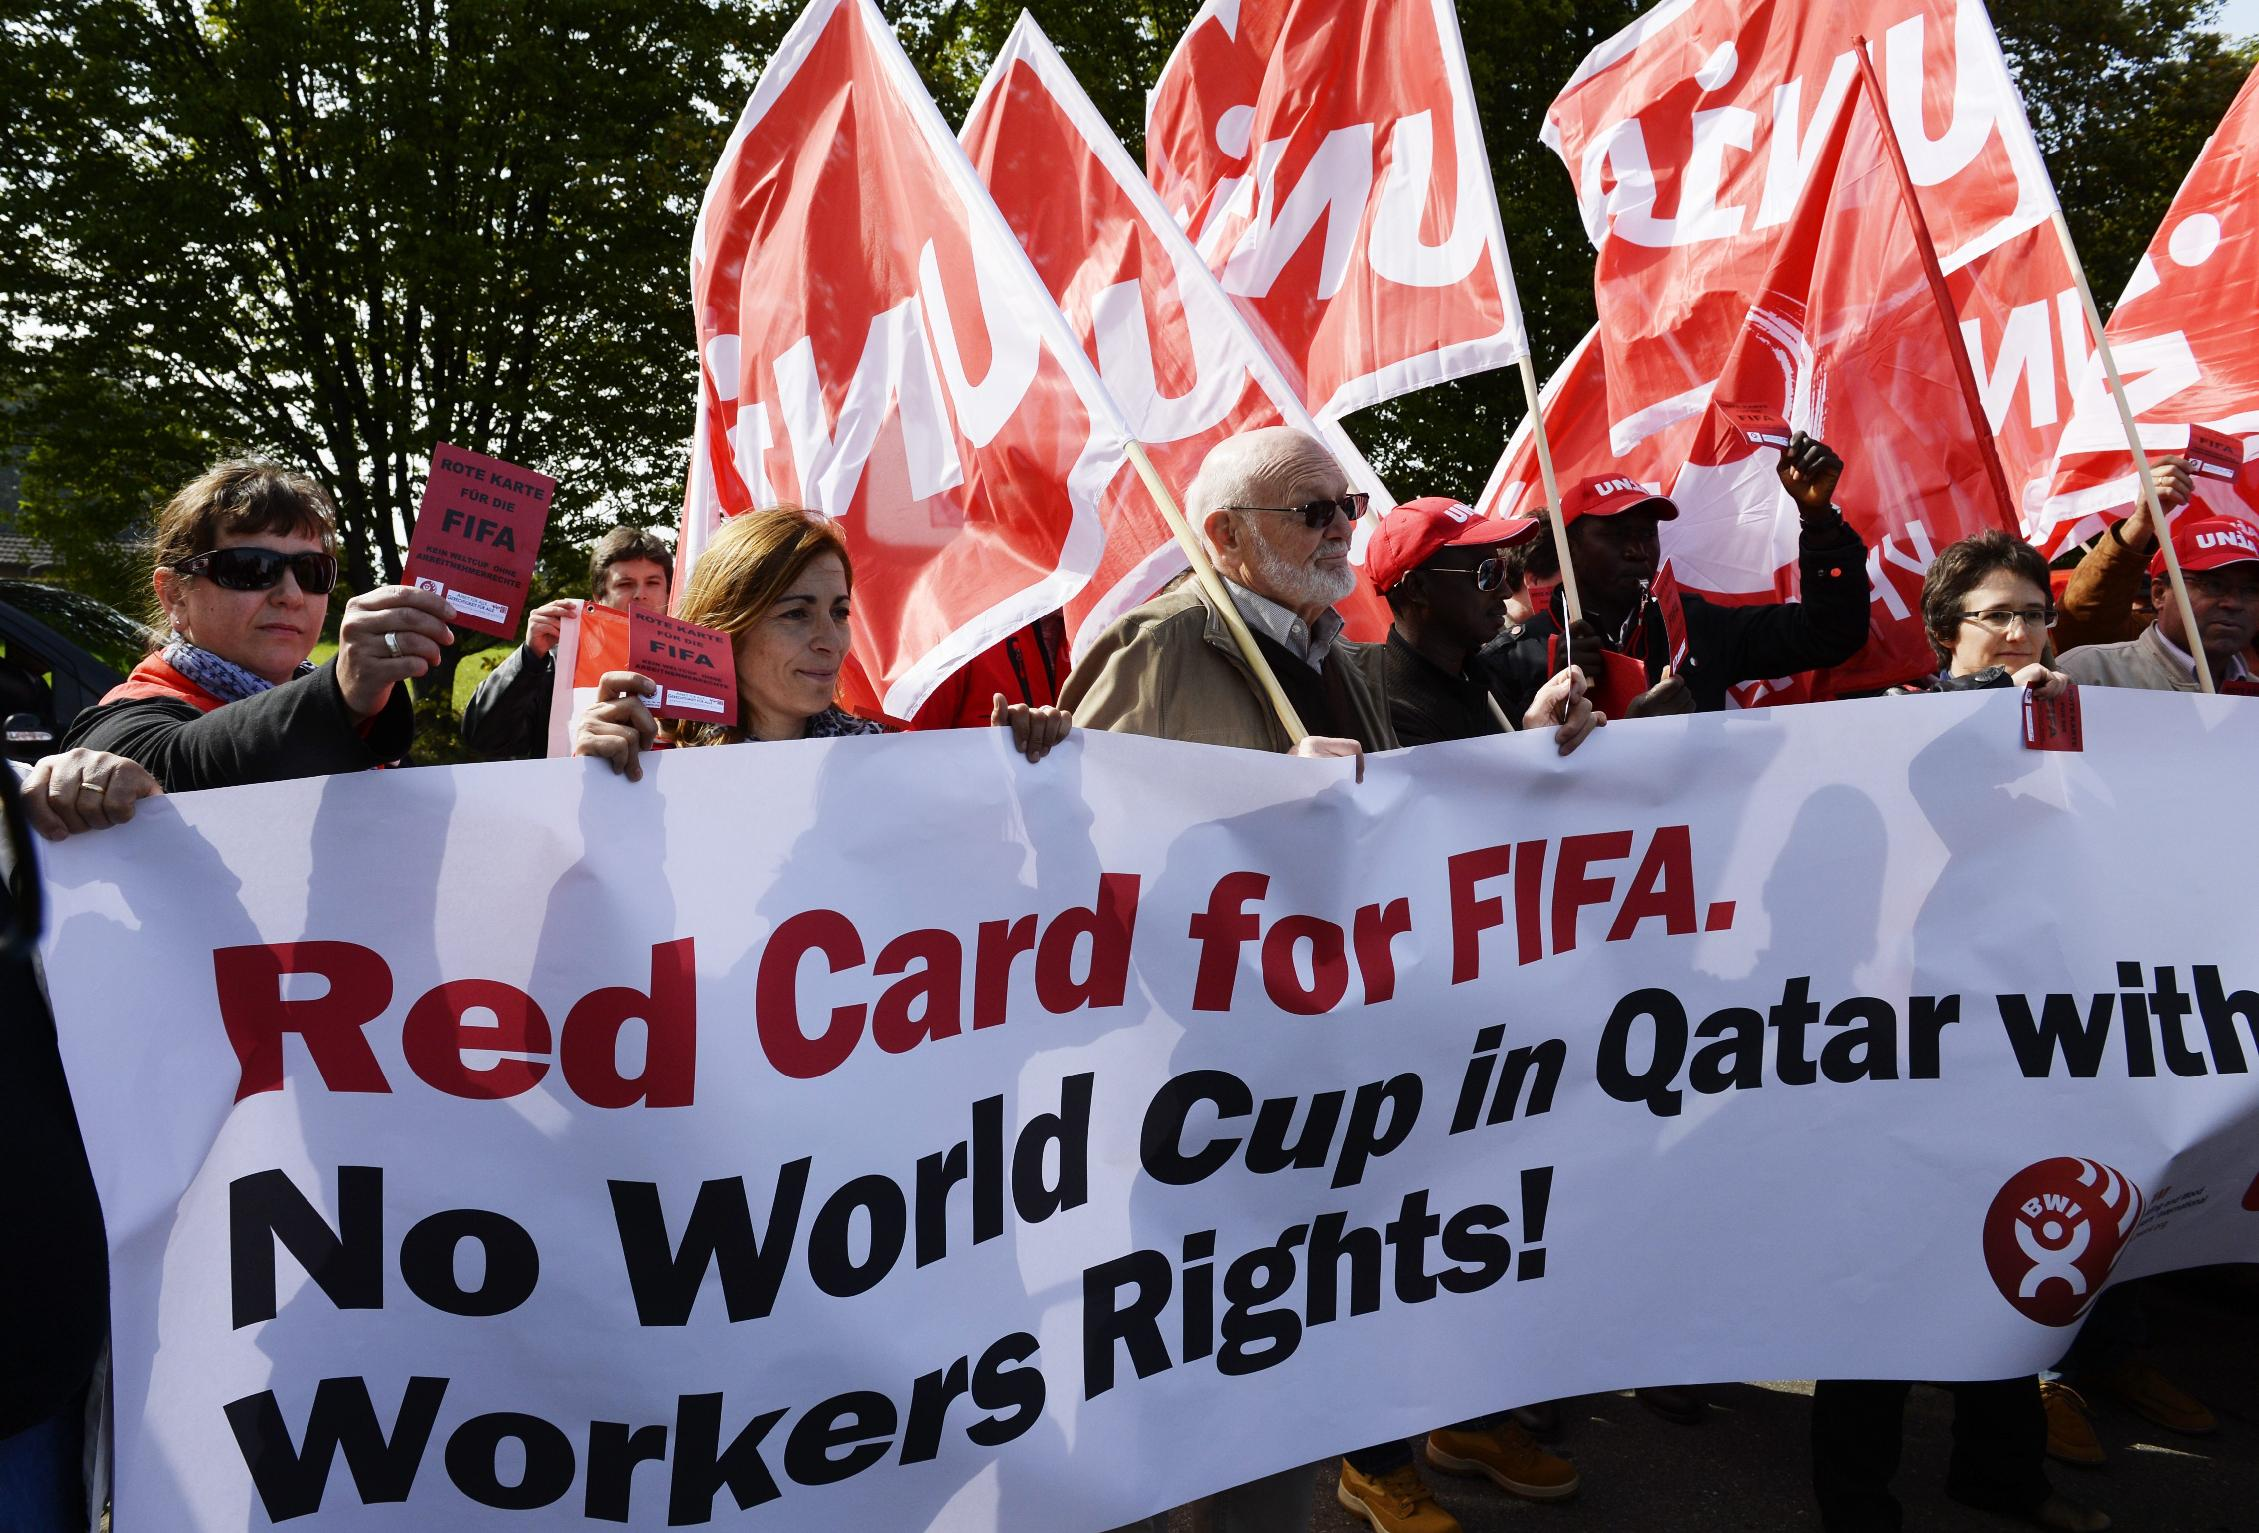 Protestors demonstrate in front of the FIFA headquarters against the working conditions in Qatar. (AP)